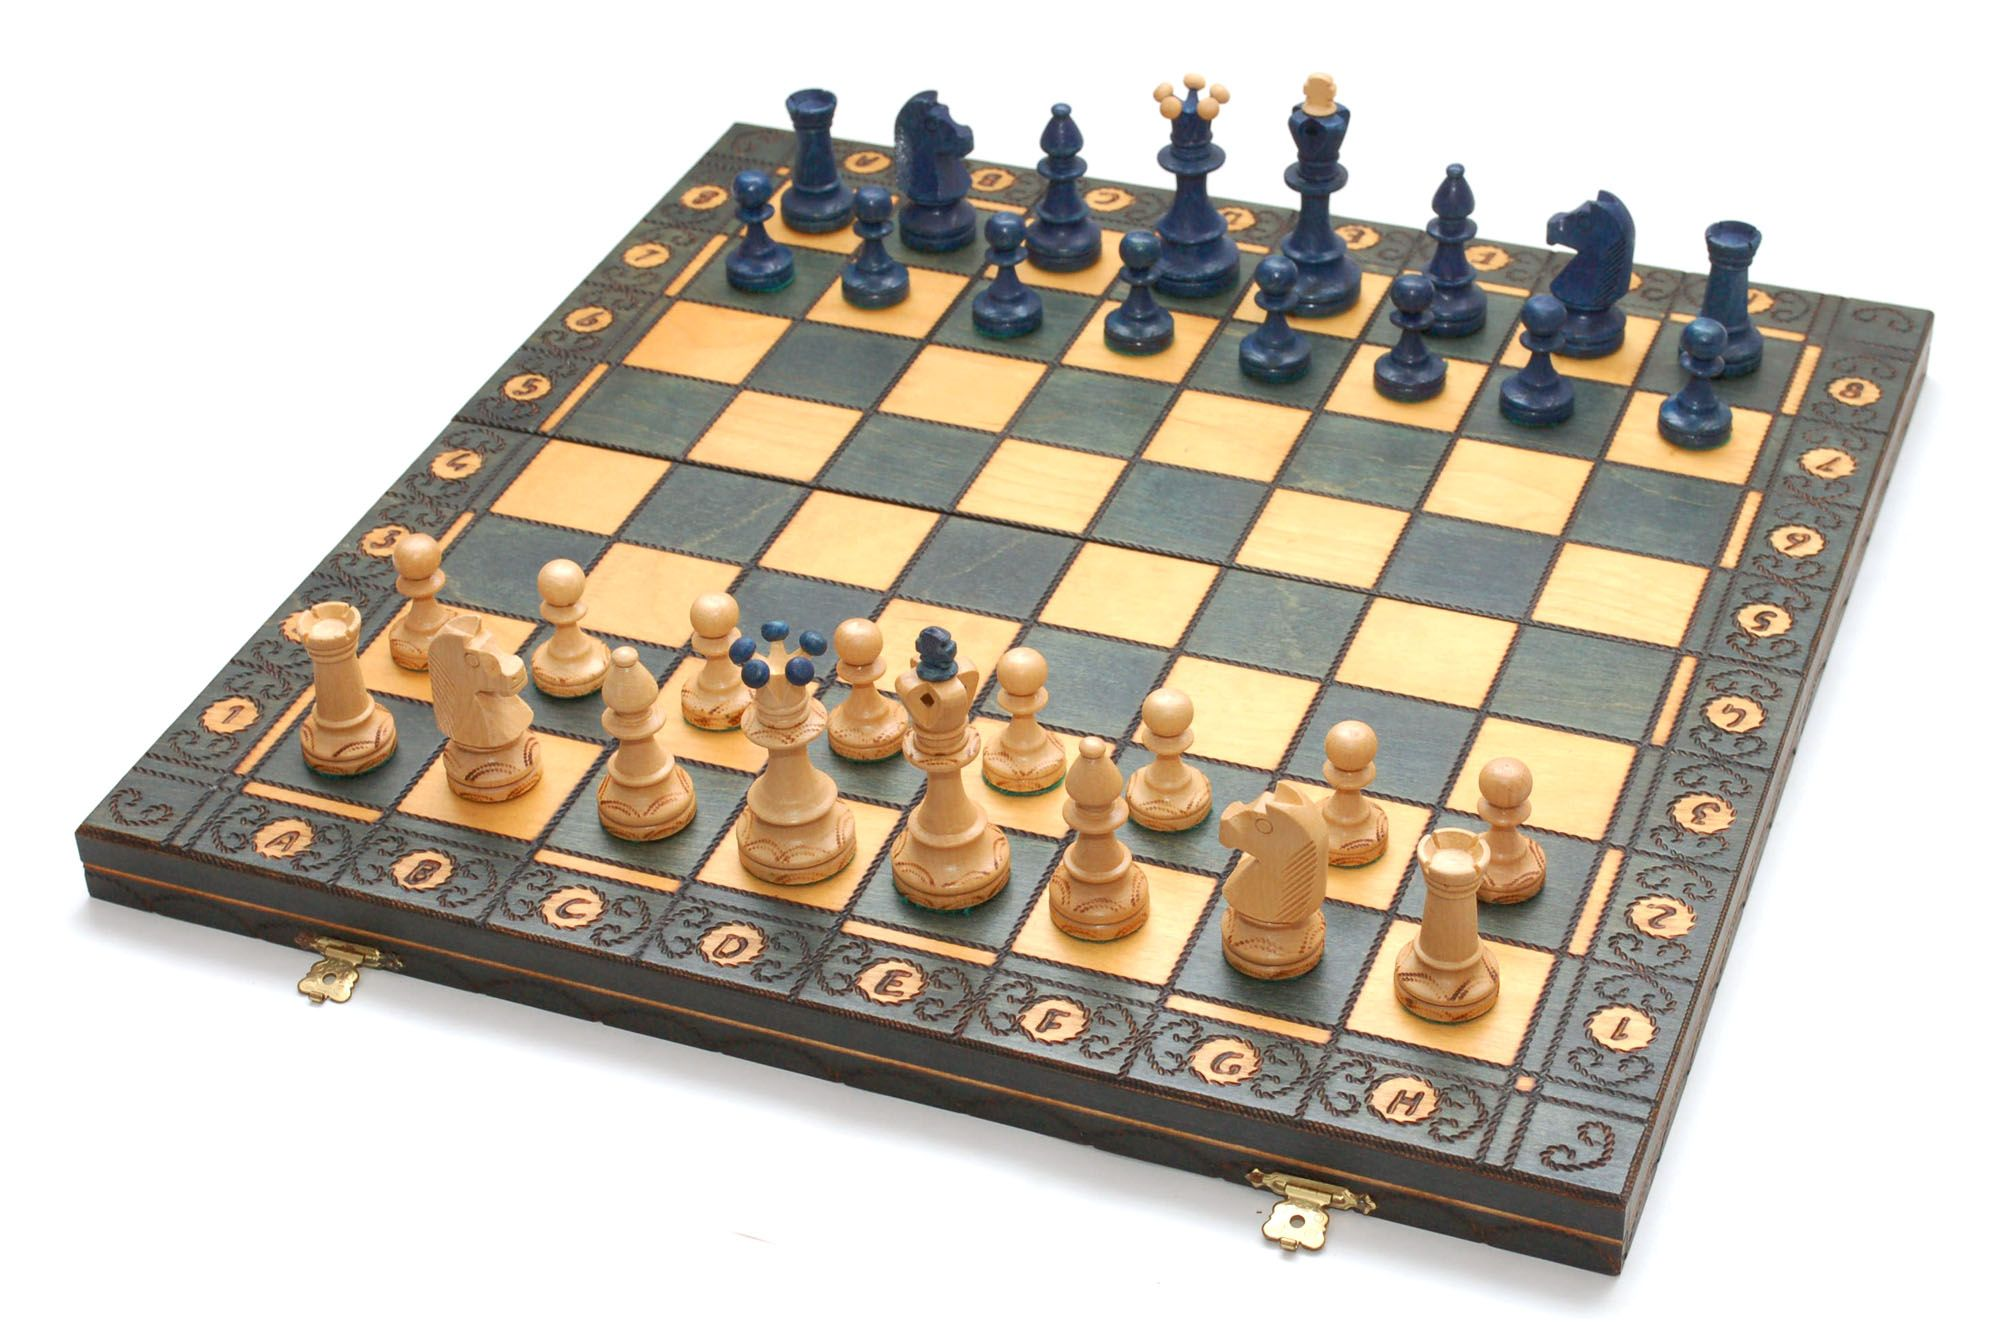 Set up a Chessboard How to play chess, Chess, Chess players